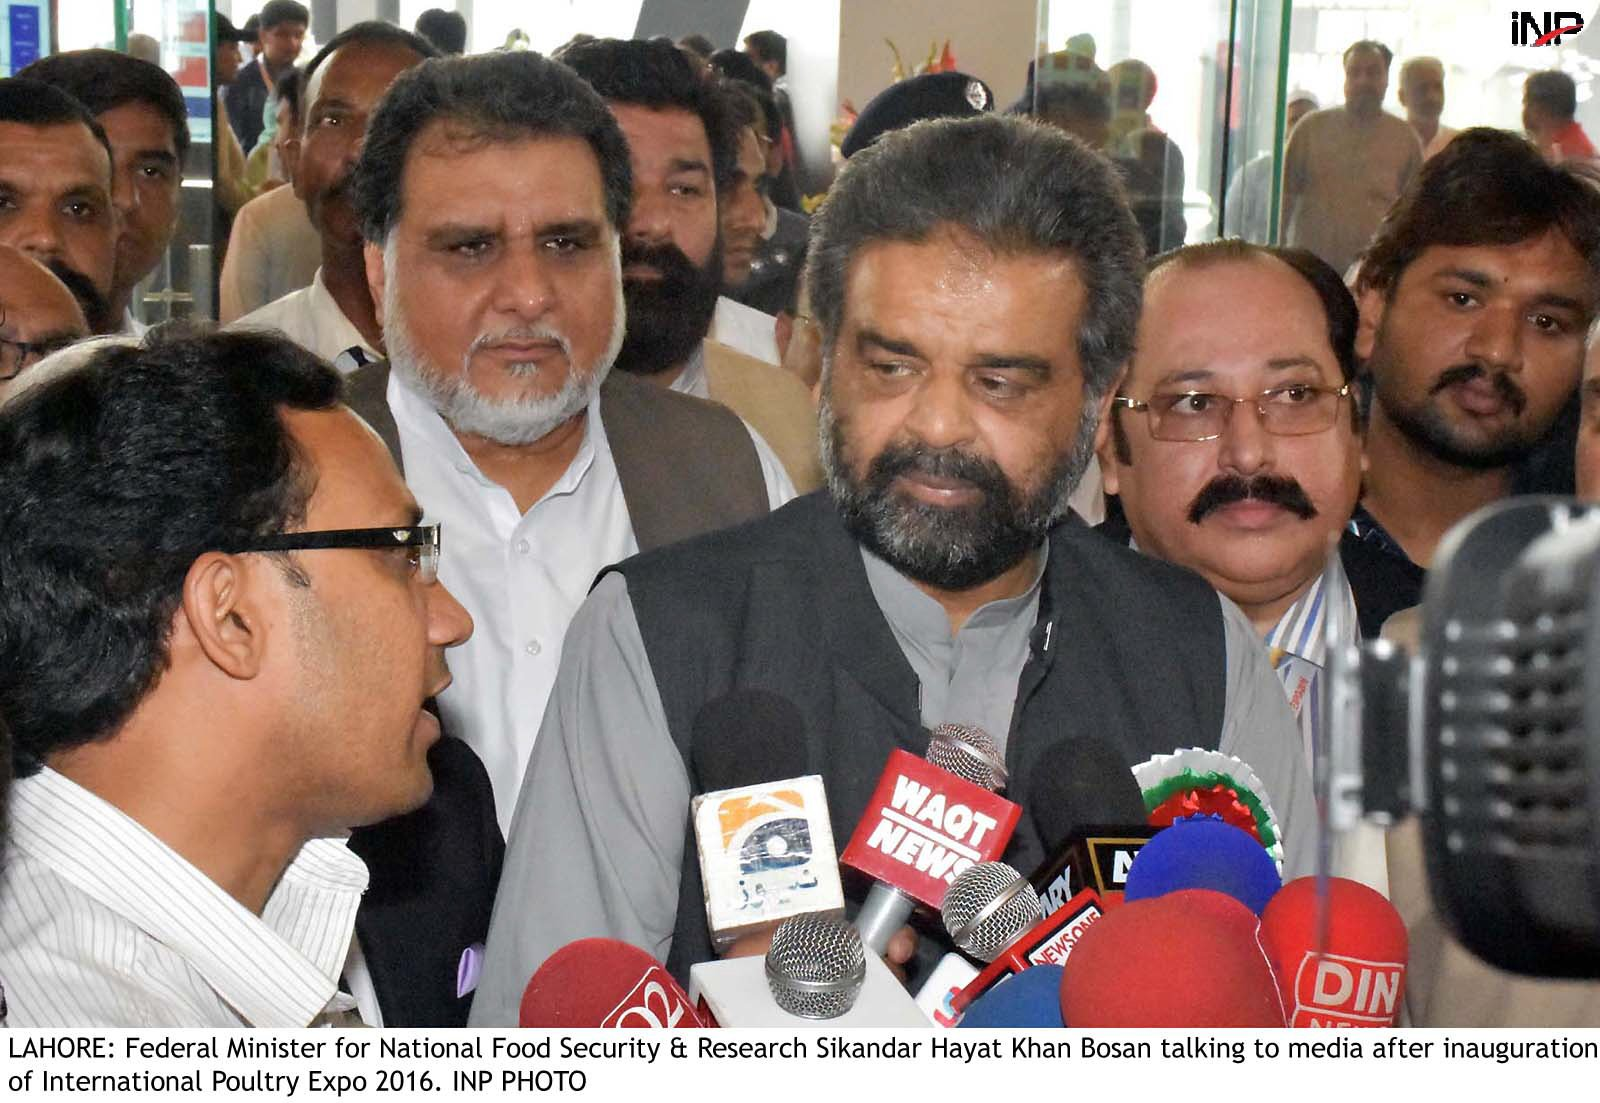 Federal Minister for National Food Security and Research Sikandar Hayat Khan Bosan talking to media  PHOTO INP